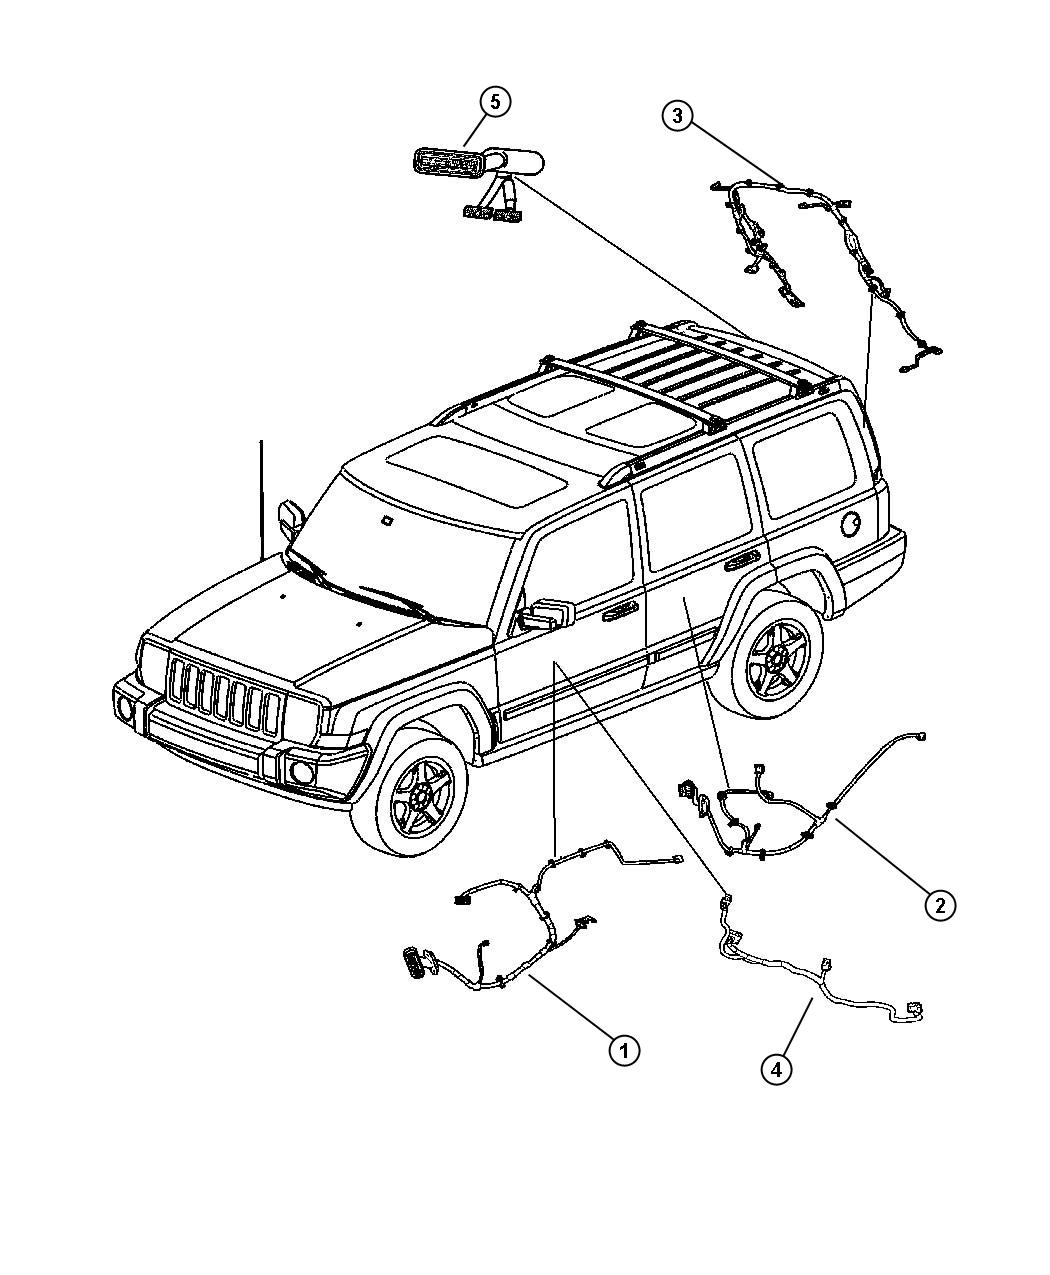 2007 Jeep Commander Wiring. Driver, driver side, left